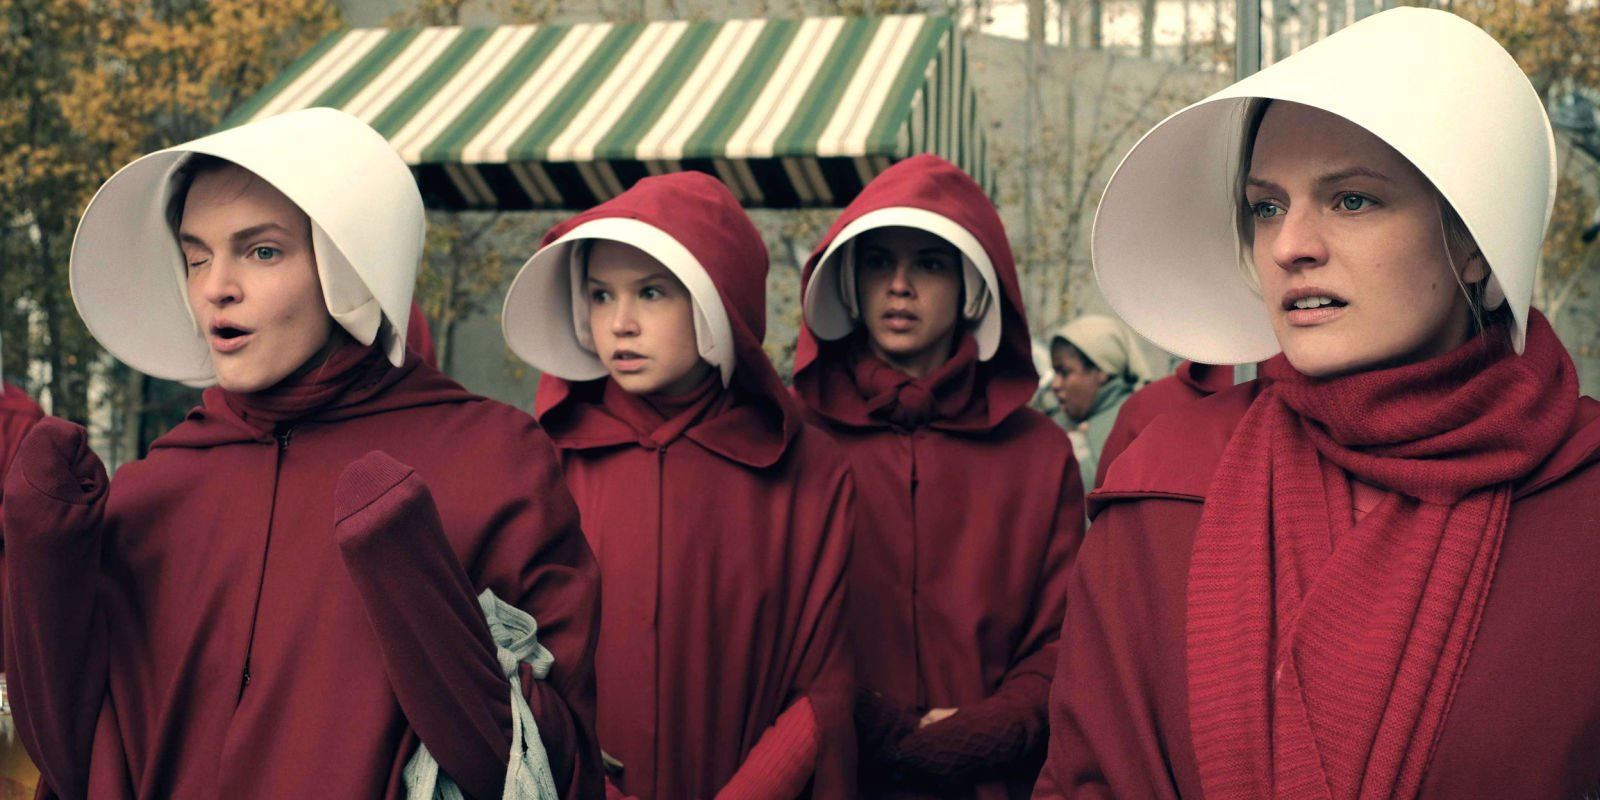 """Elisabeth Moss hints at """"inspiring"""" and """"gut-wrenching"""" Handmaid's Tale season 2 after Golden Globes win"""